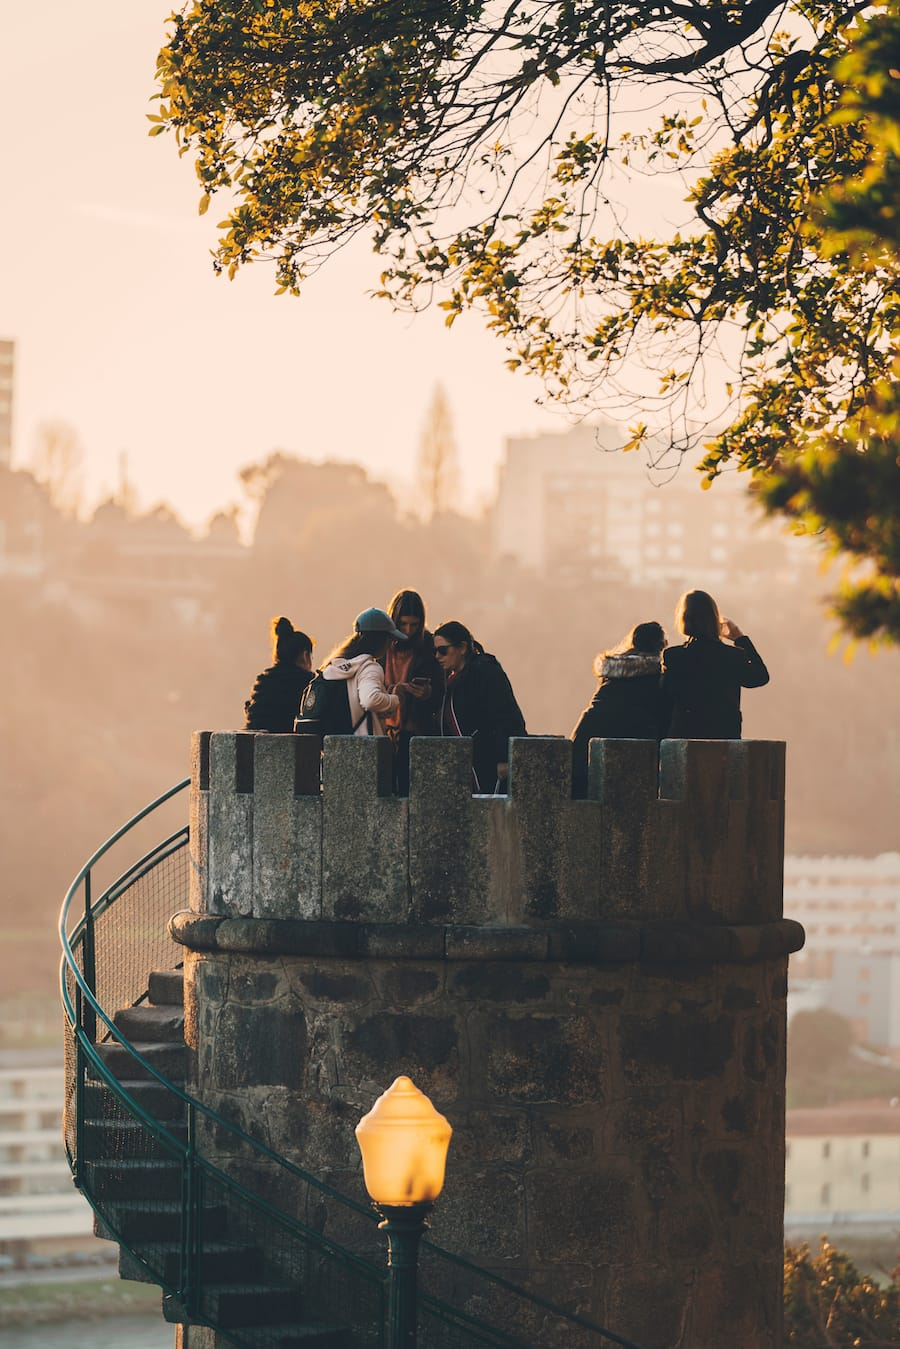 One day in Porto Itinerary for First-Time Visitors